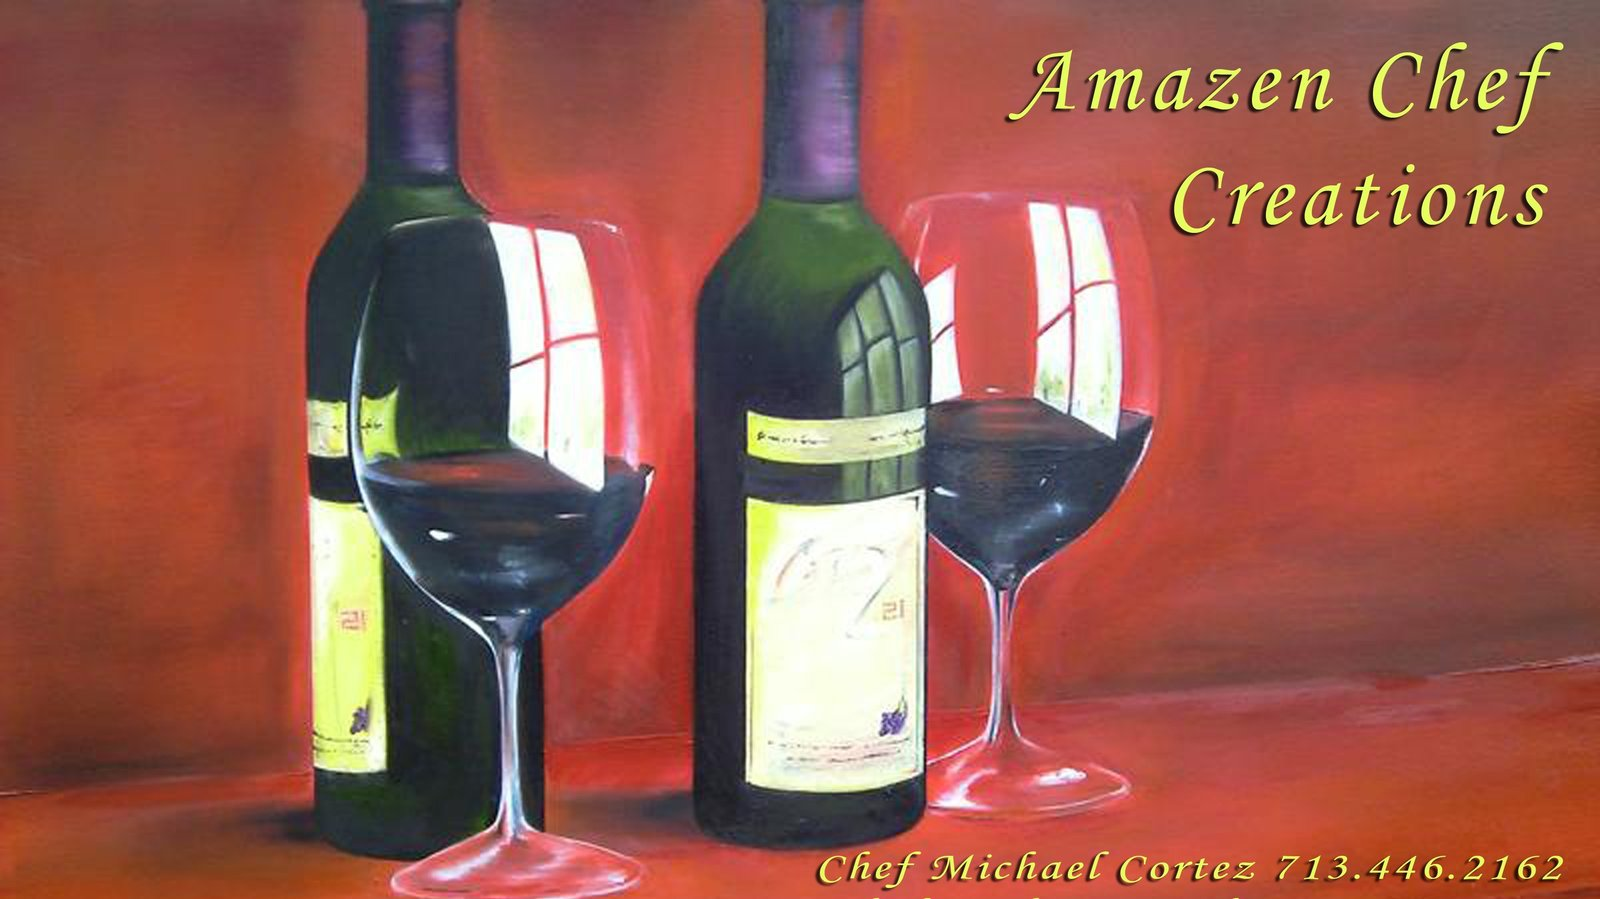 Amazen Chef Creations Logo - Copy